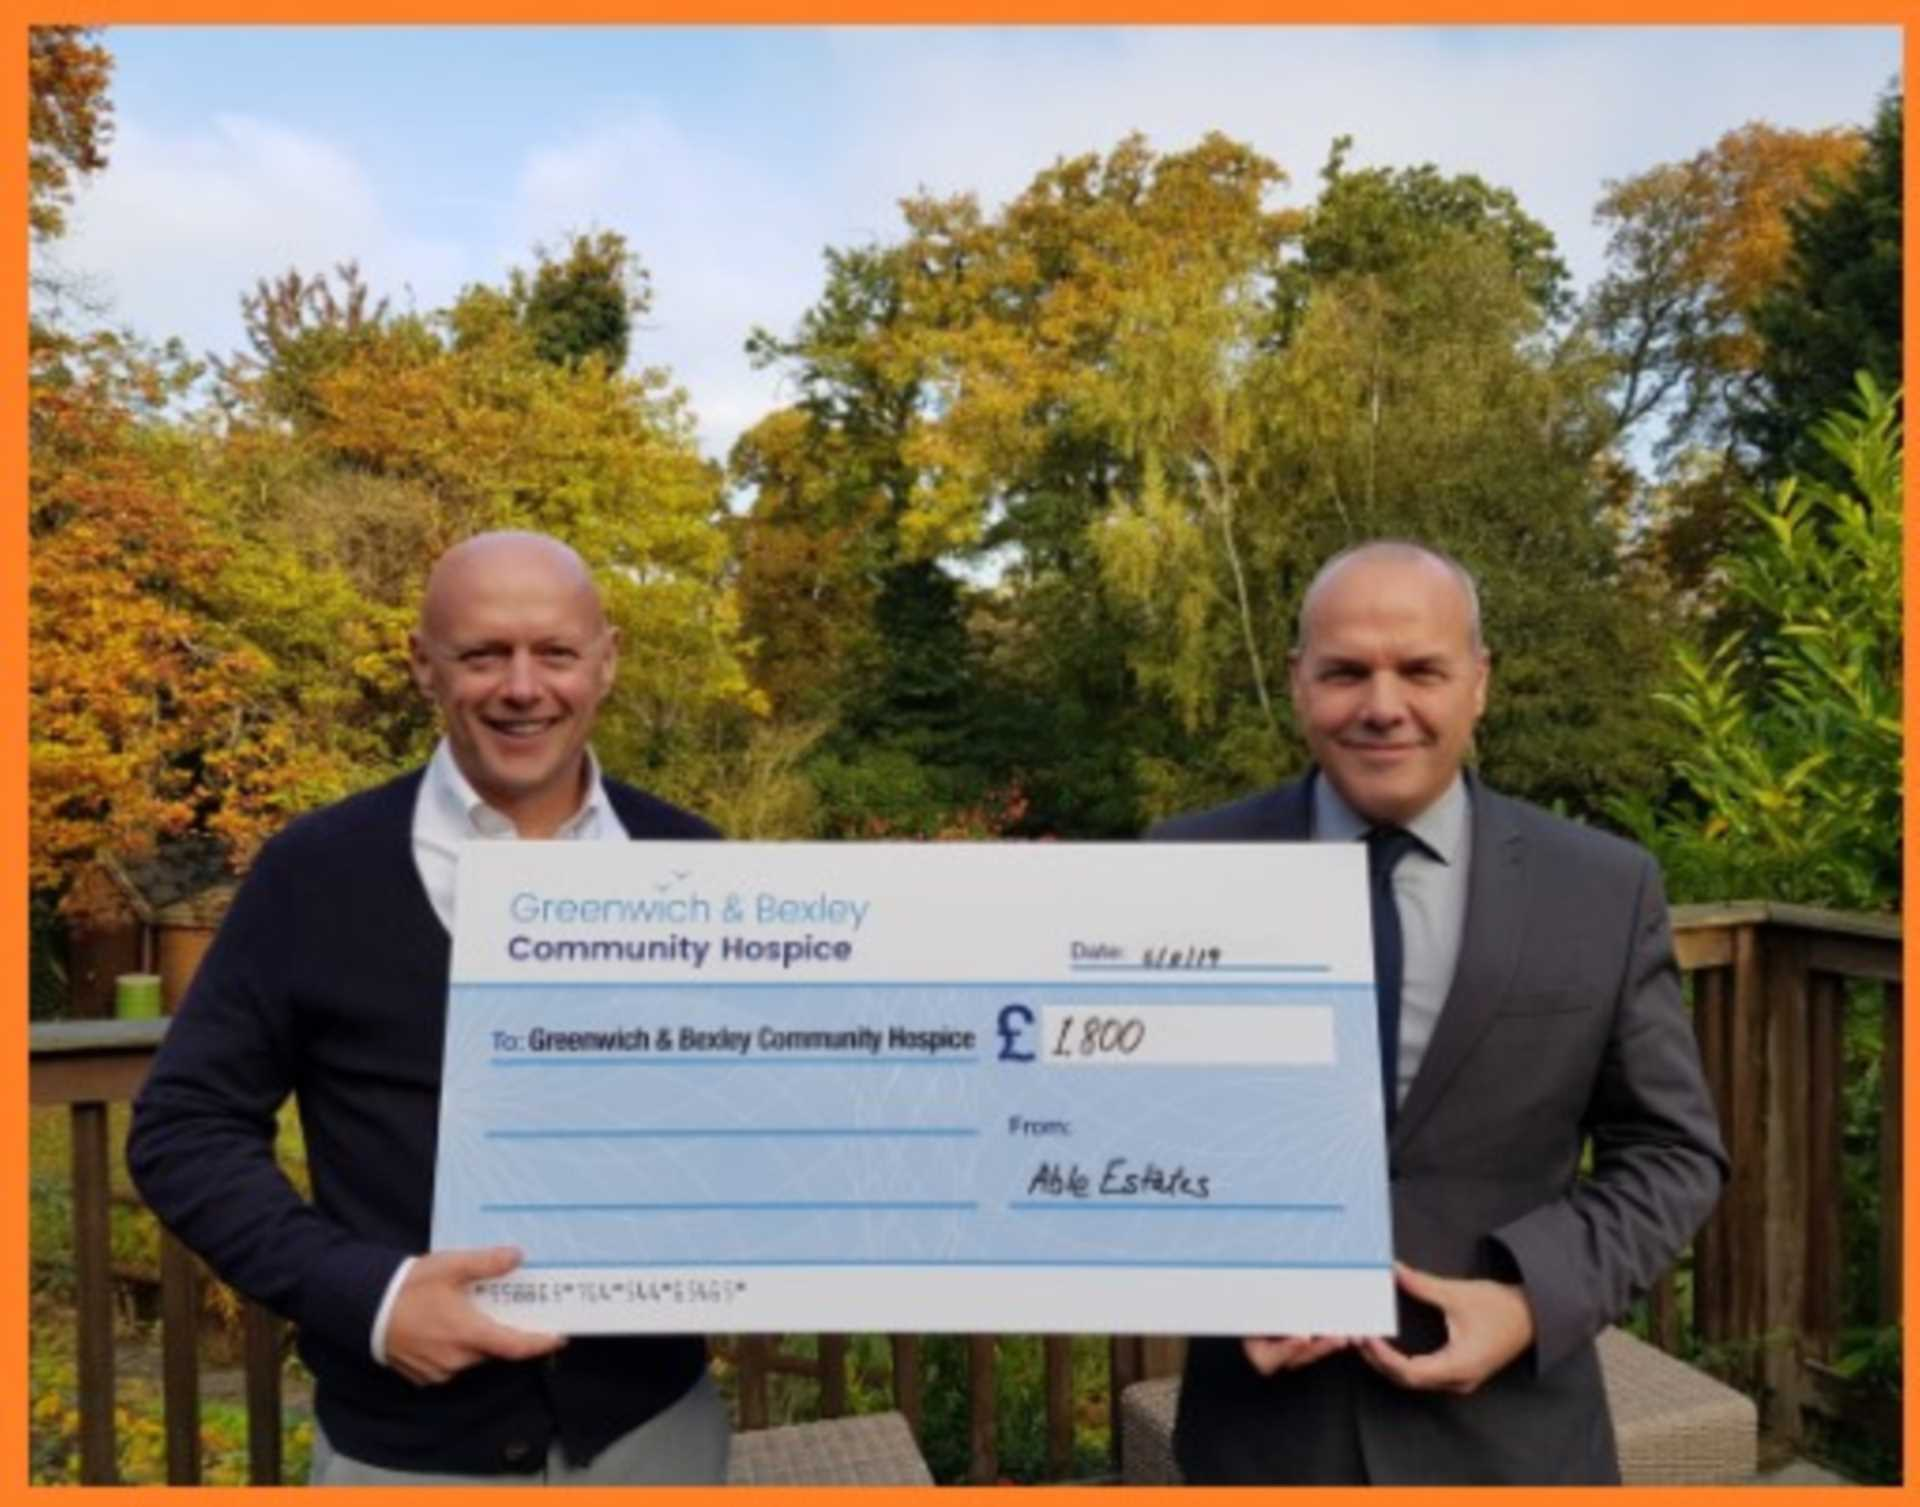 Able Estates raise £1800.00 for Greenwich & Bexley Community Hospice